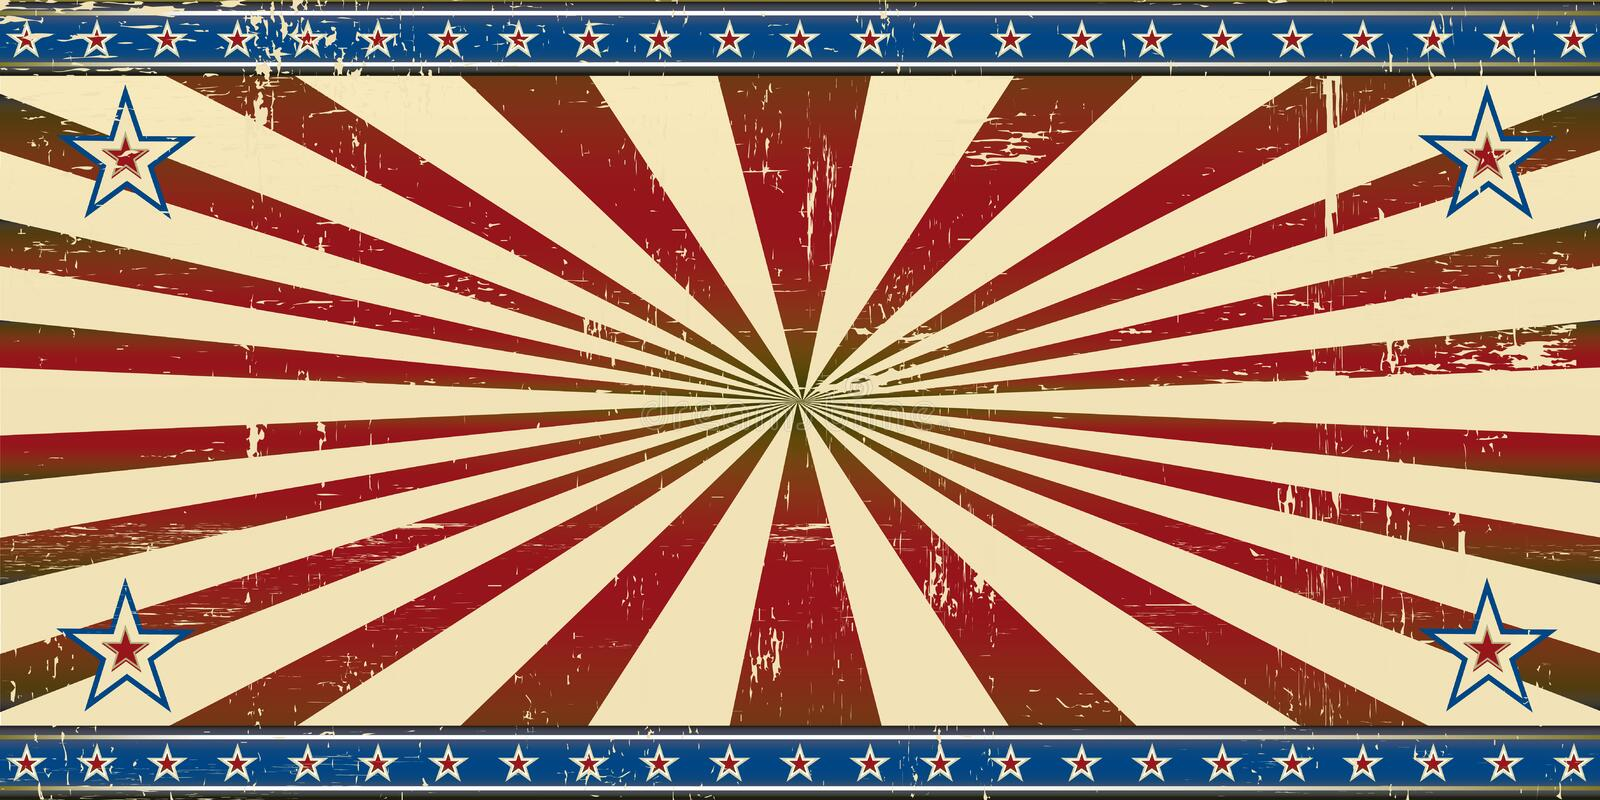 Retro patriotic banner royalty free stock image